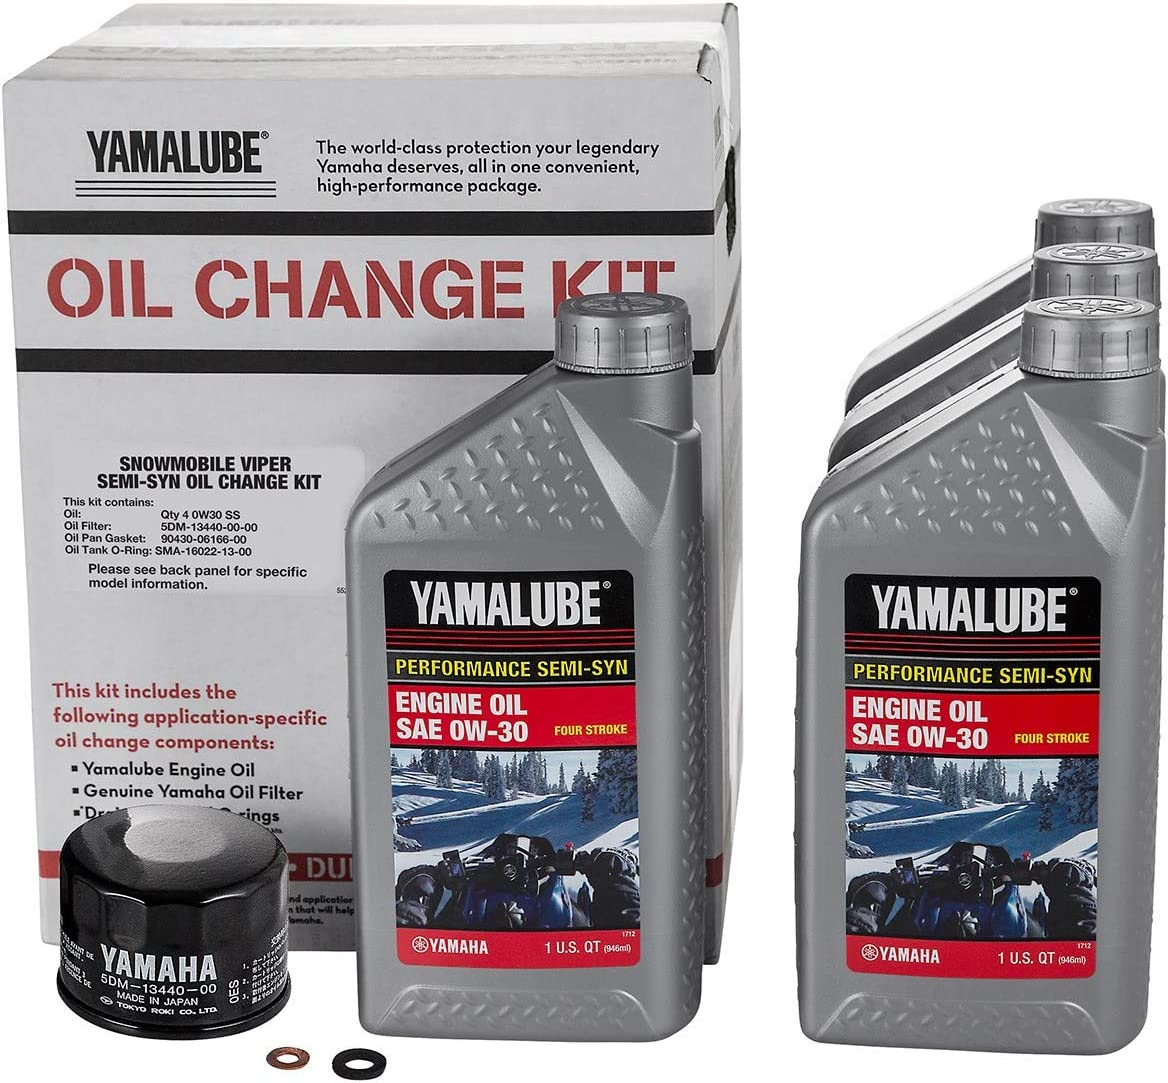 Yamaha Sidewinder/SR Viper Semi-Synthetic Oil Change Kit - LUB-SMBCG-KT-20